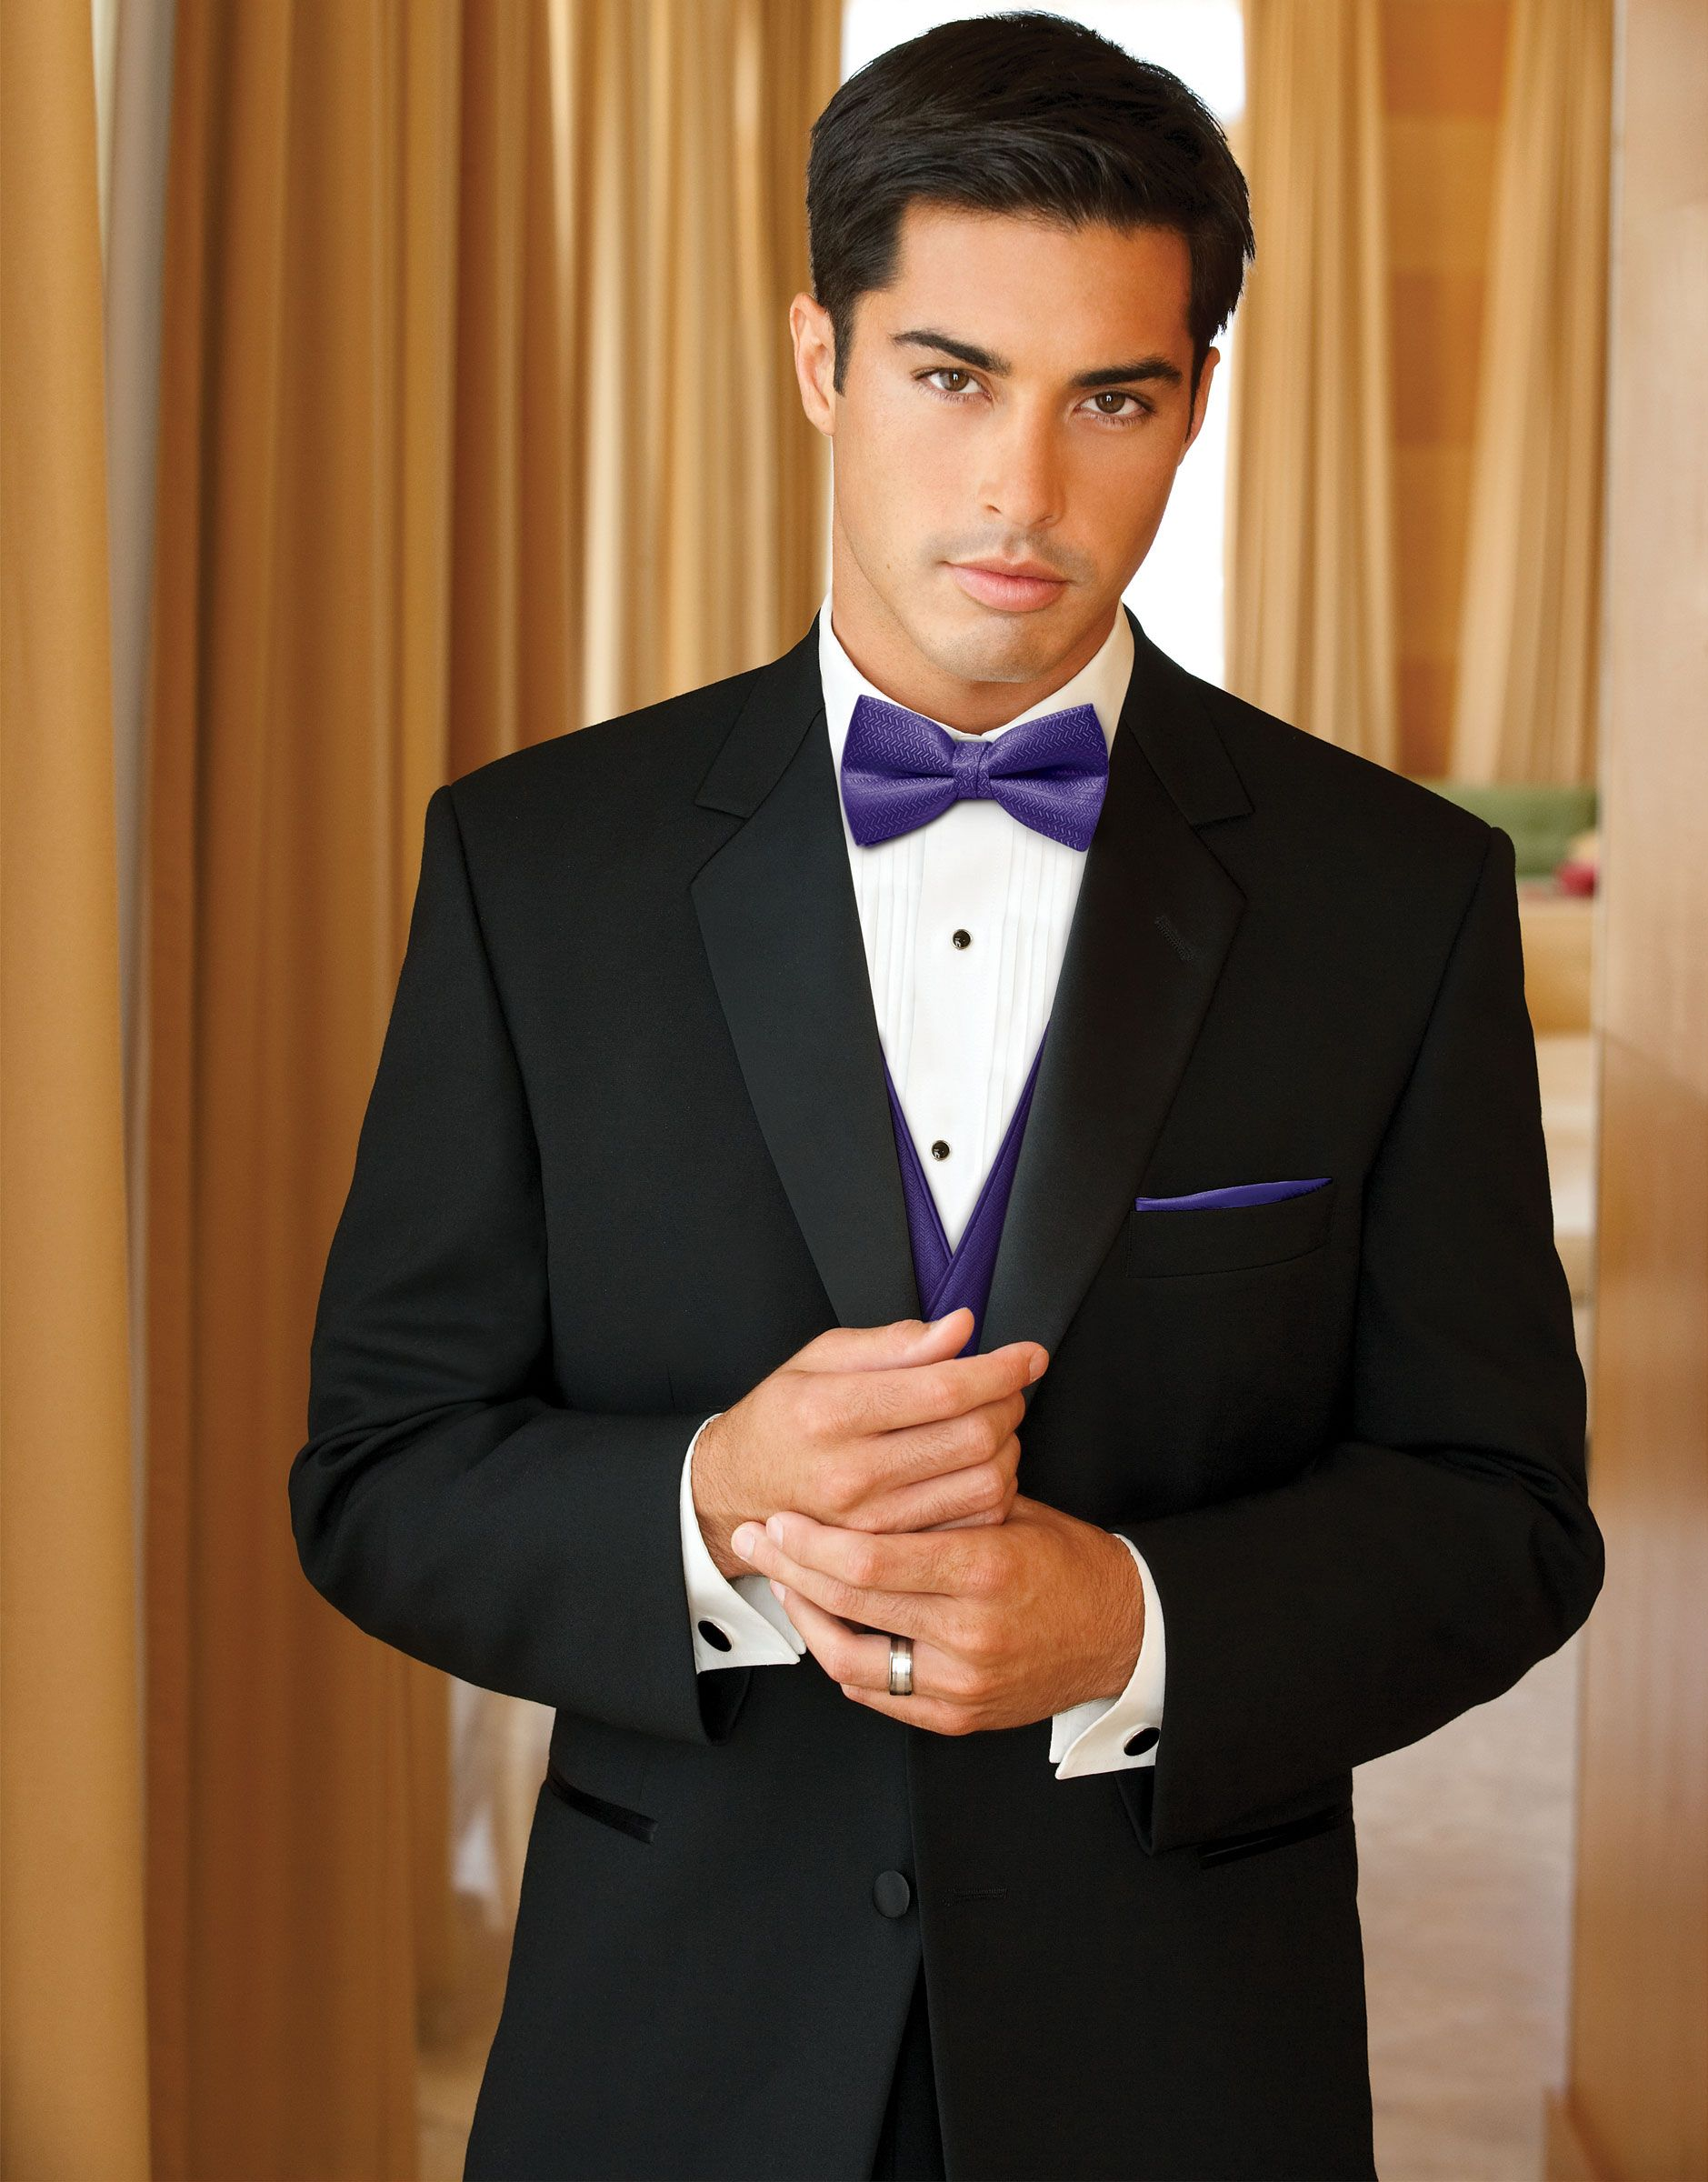 Groom Black Tie with purple shirt | ... by after six ...